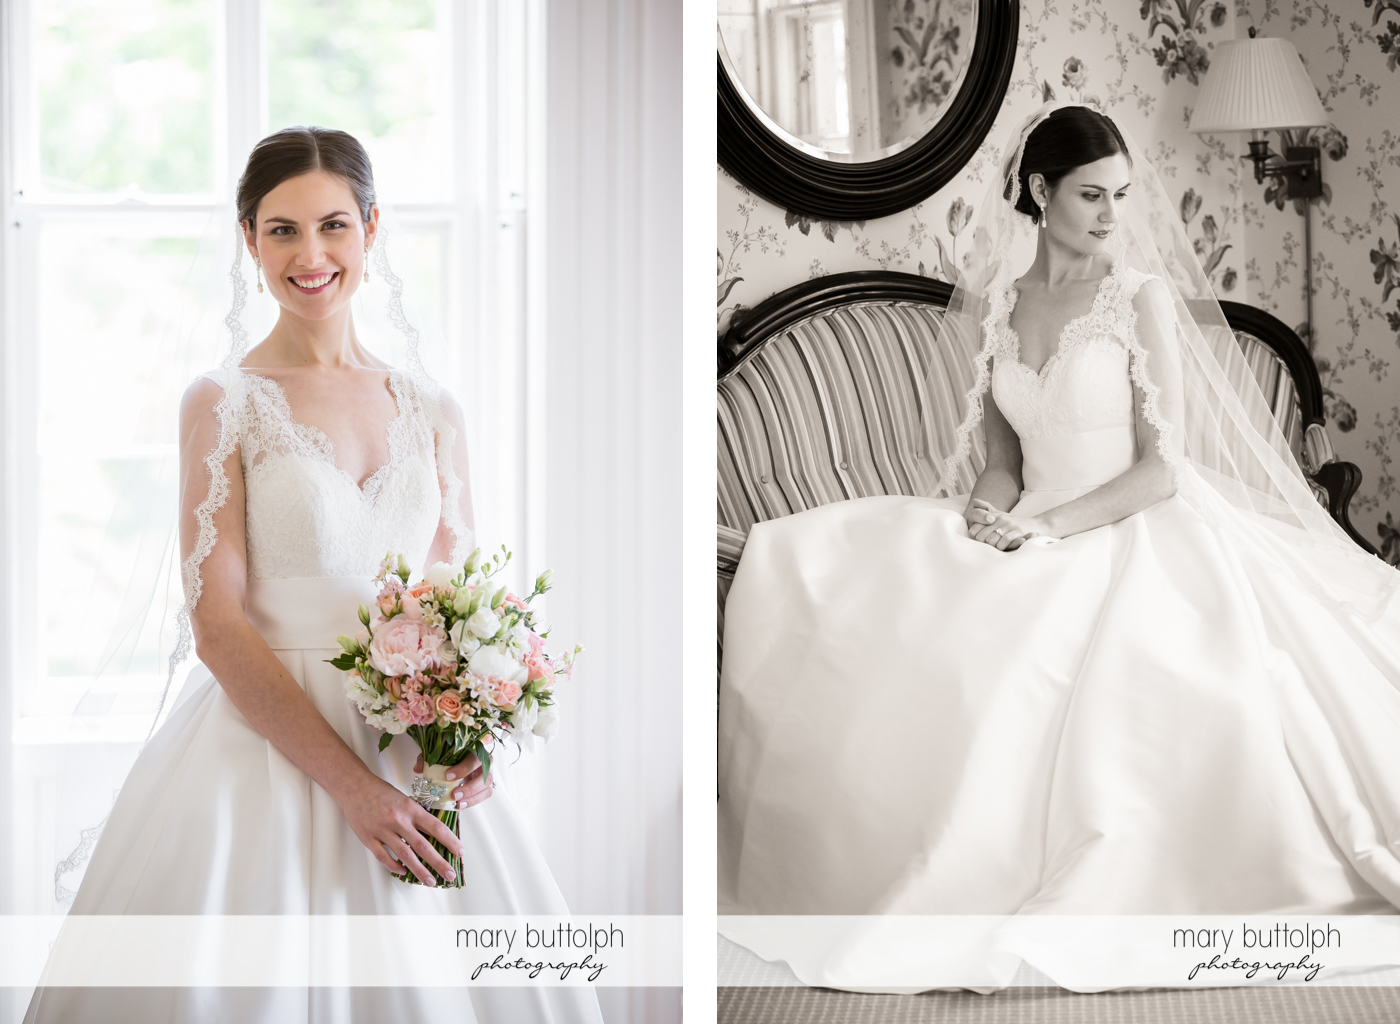 Two different shots of the happy bride at the Inns of Aurora Wedding